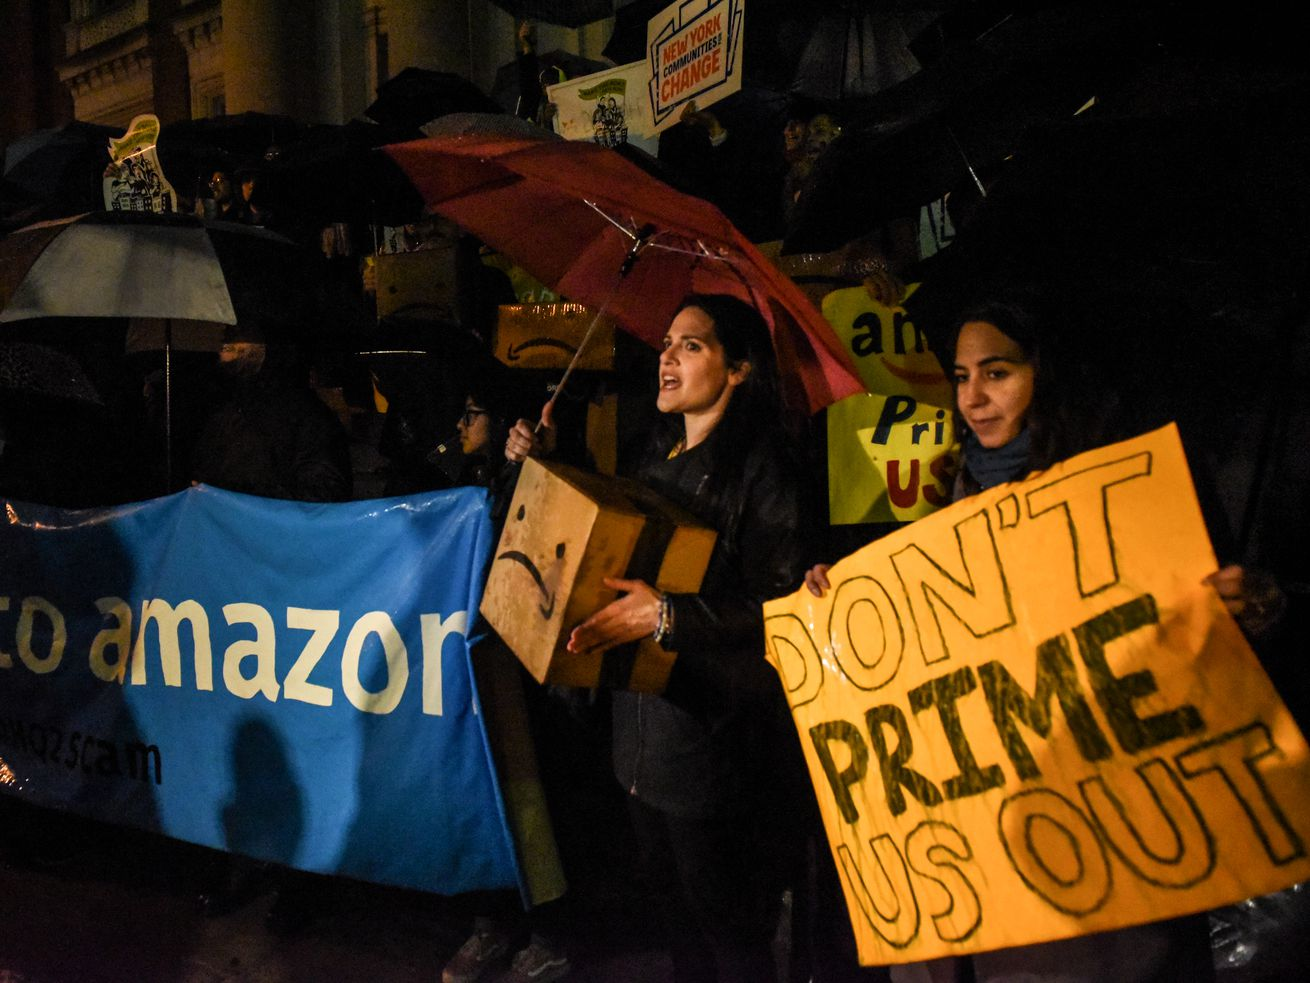 People opposed to Amazon's plan to locate a headquarters in New York City hold a protest in Court House Square on November 26, 2018, in the Long Island City neighborhood of the Queens borough of New York City.